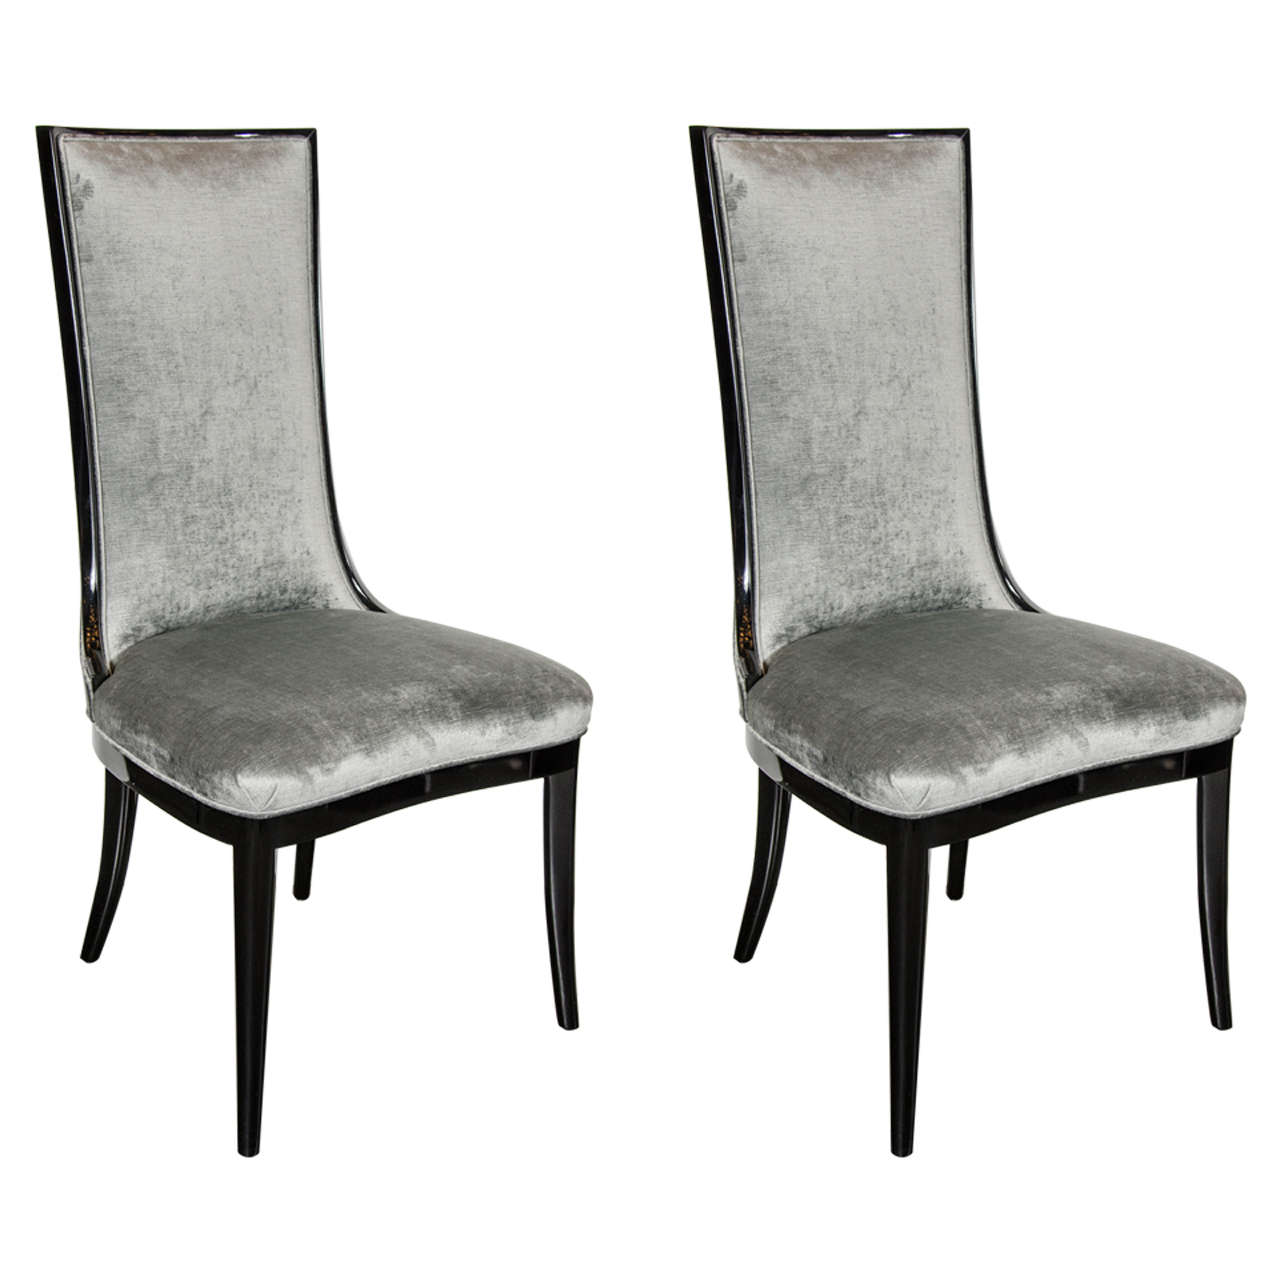 Pair Of 1940s High Back Occasional Chairs In Ebonized Walnut And Pewter Velvet For